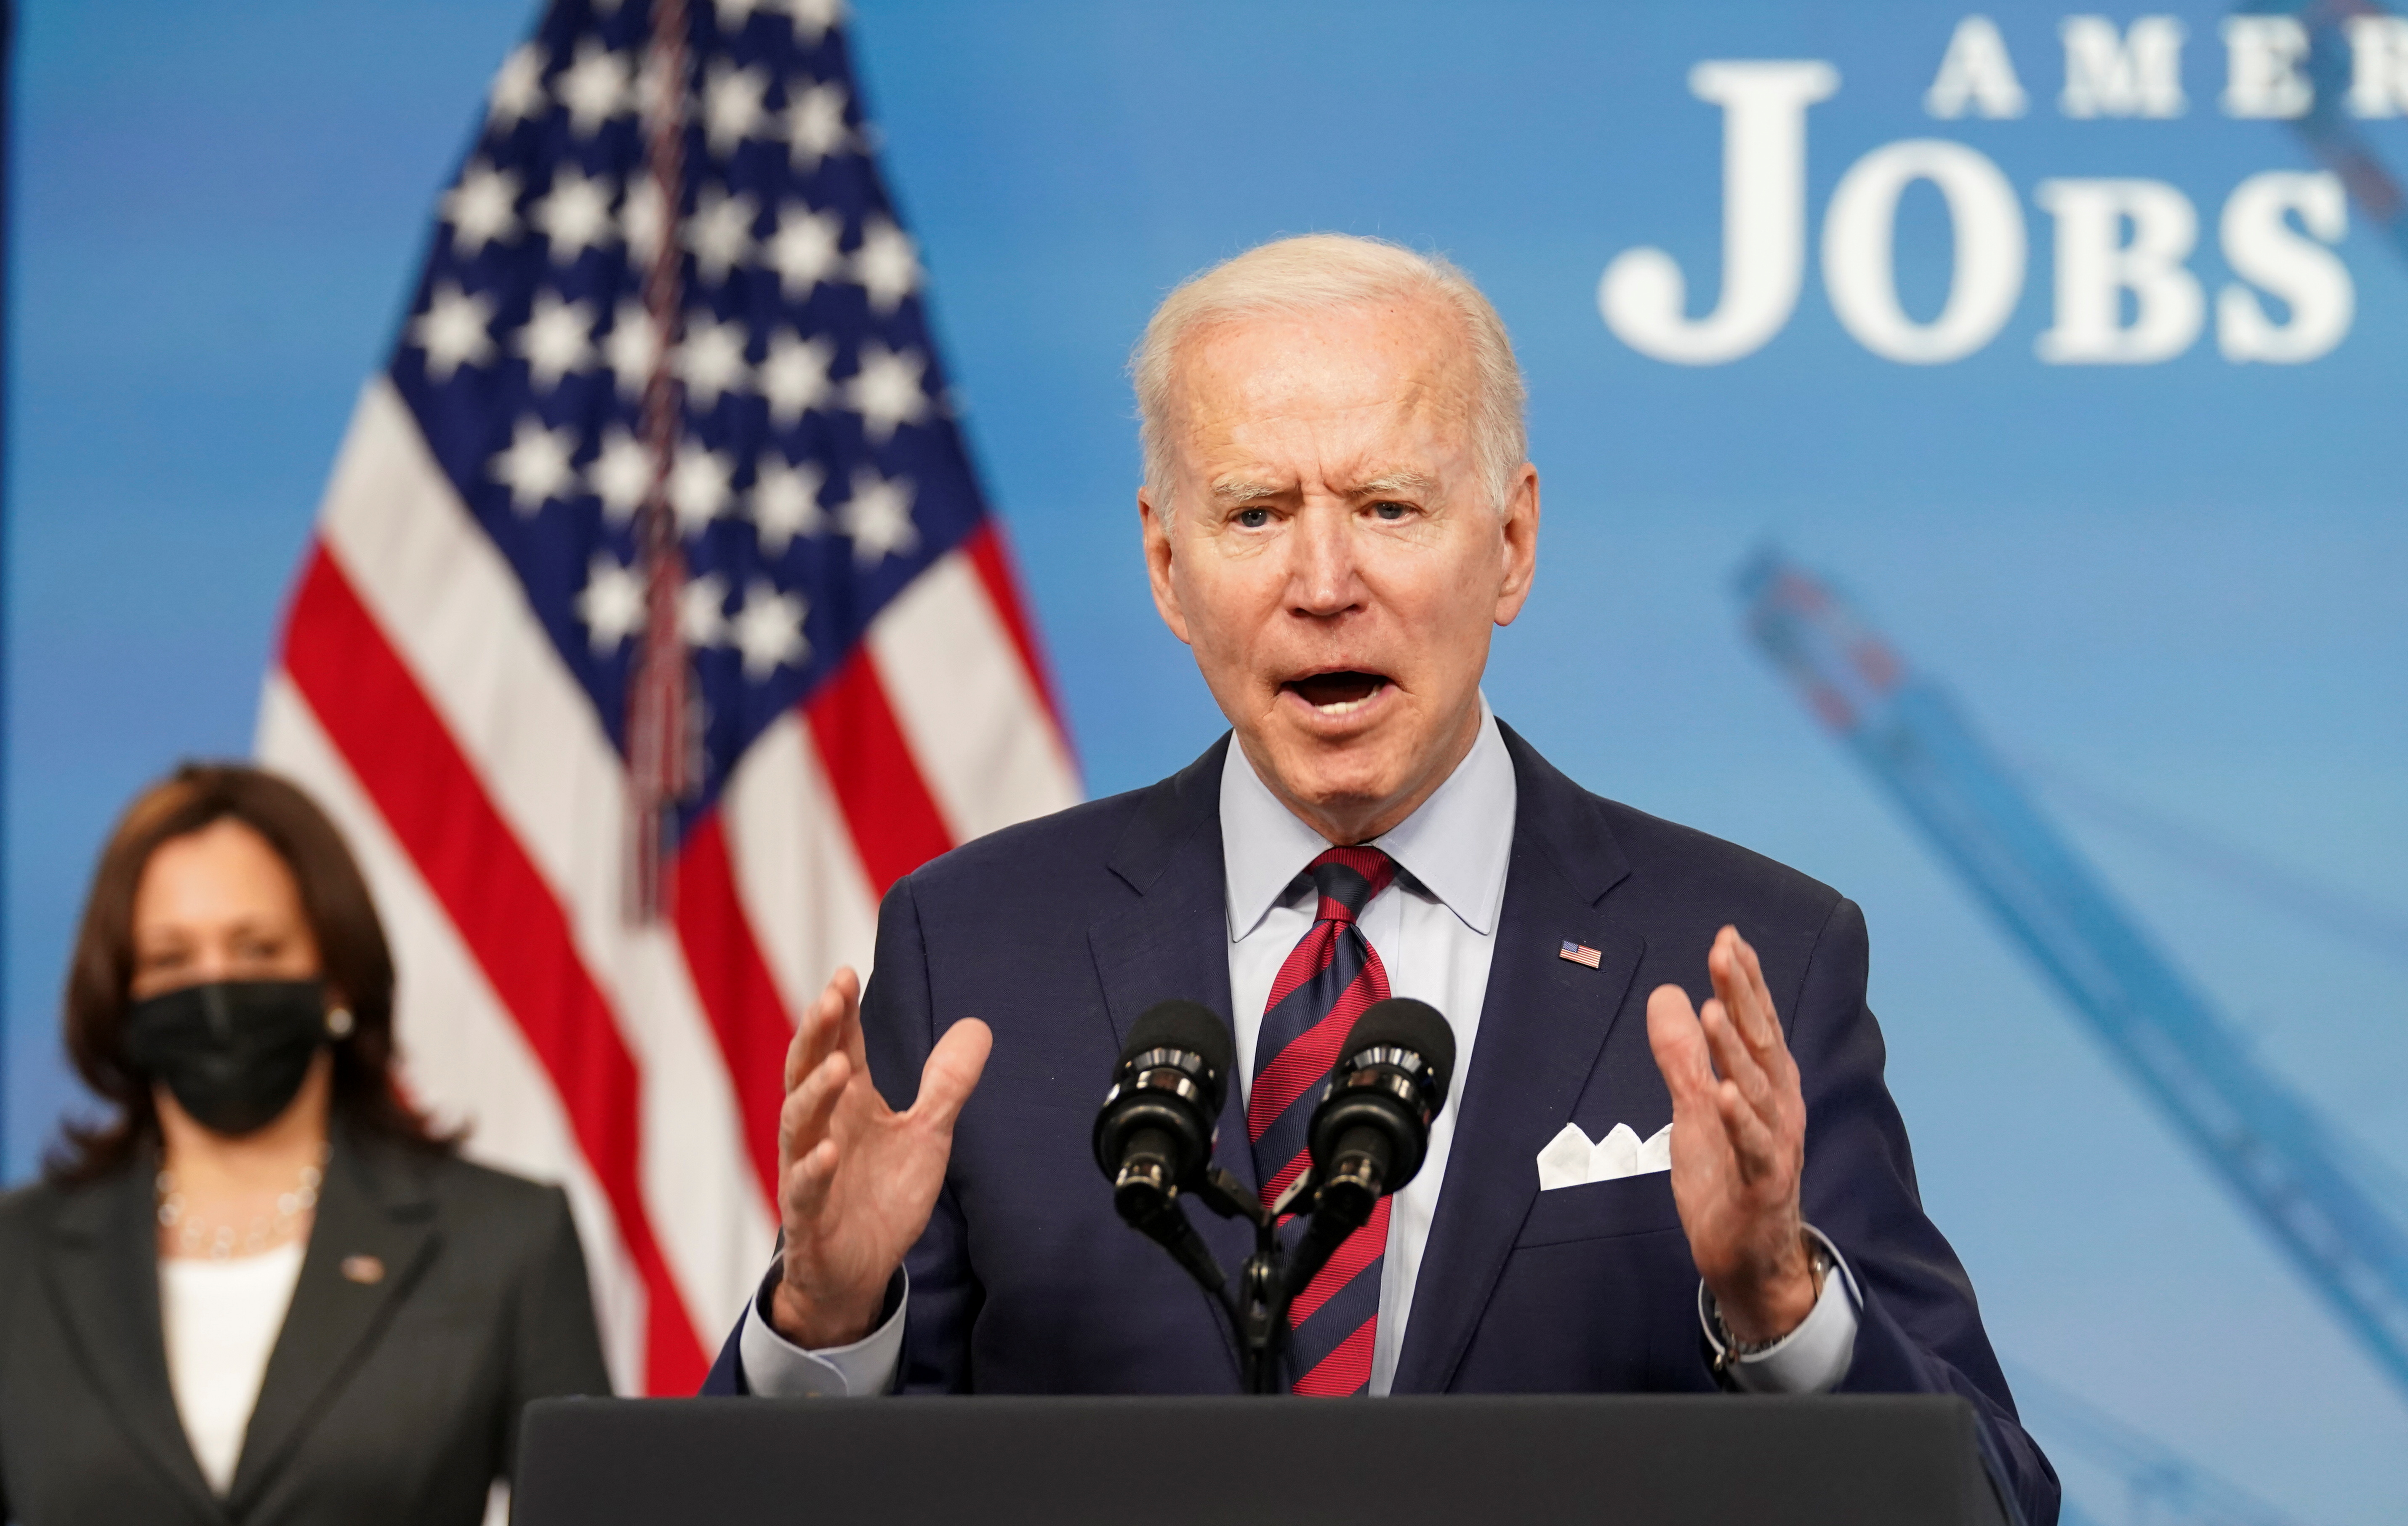 U.S. President Joe Biden speaks about jobs and the economy at the White House in Washington, U.S., April 7, 2021. REUTERS/Kevin Lamarque